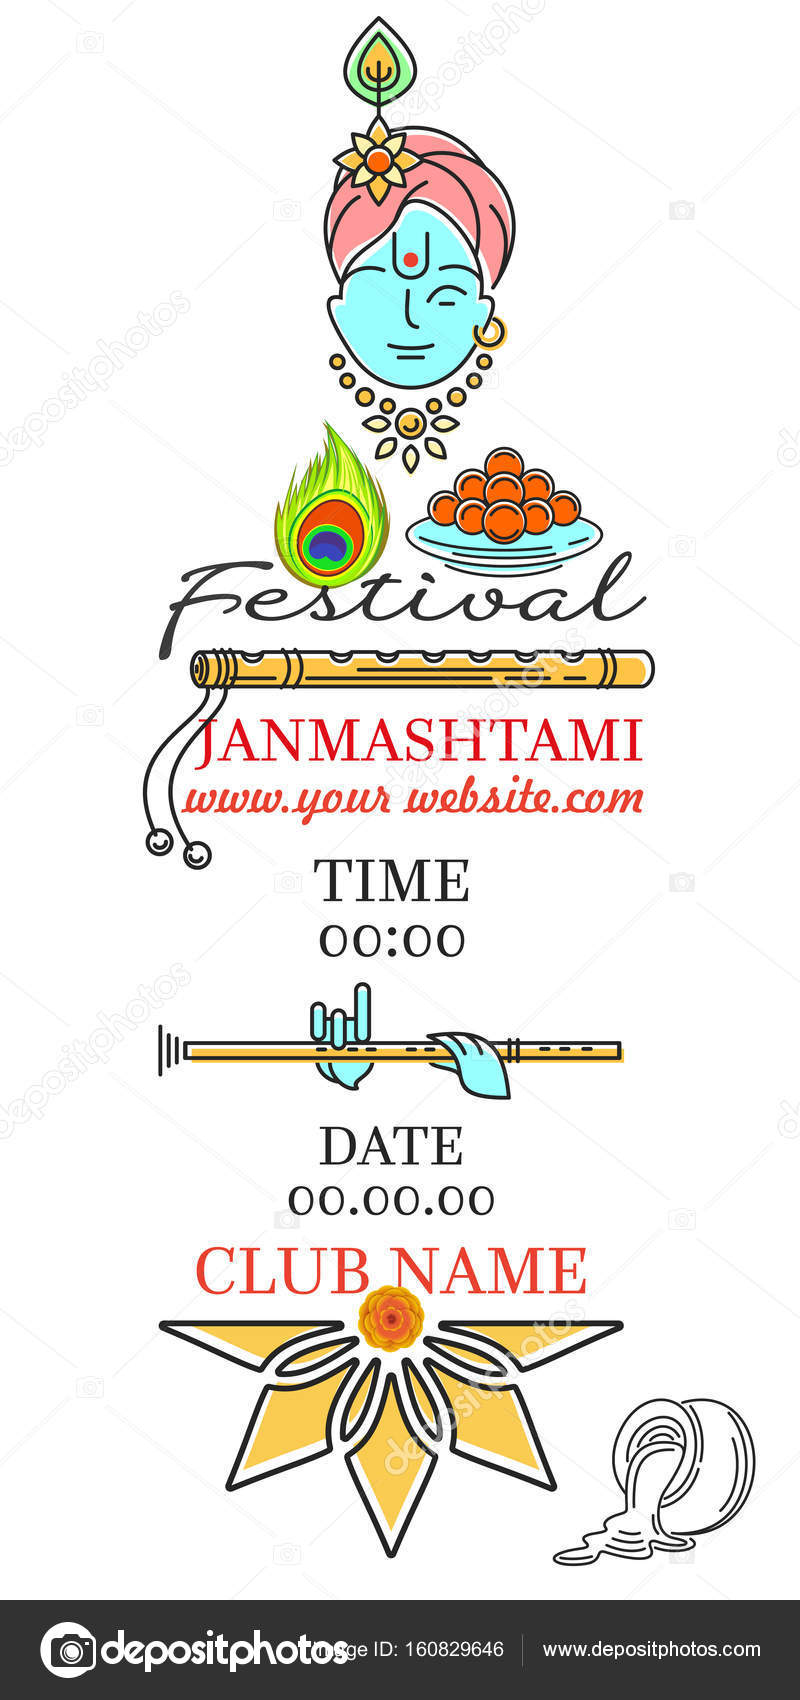 Krishna janmashtami festival invitation card stock vector krishna janmashtami festival invitation card stock vector stopboris Images